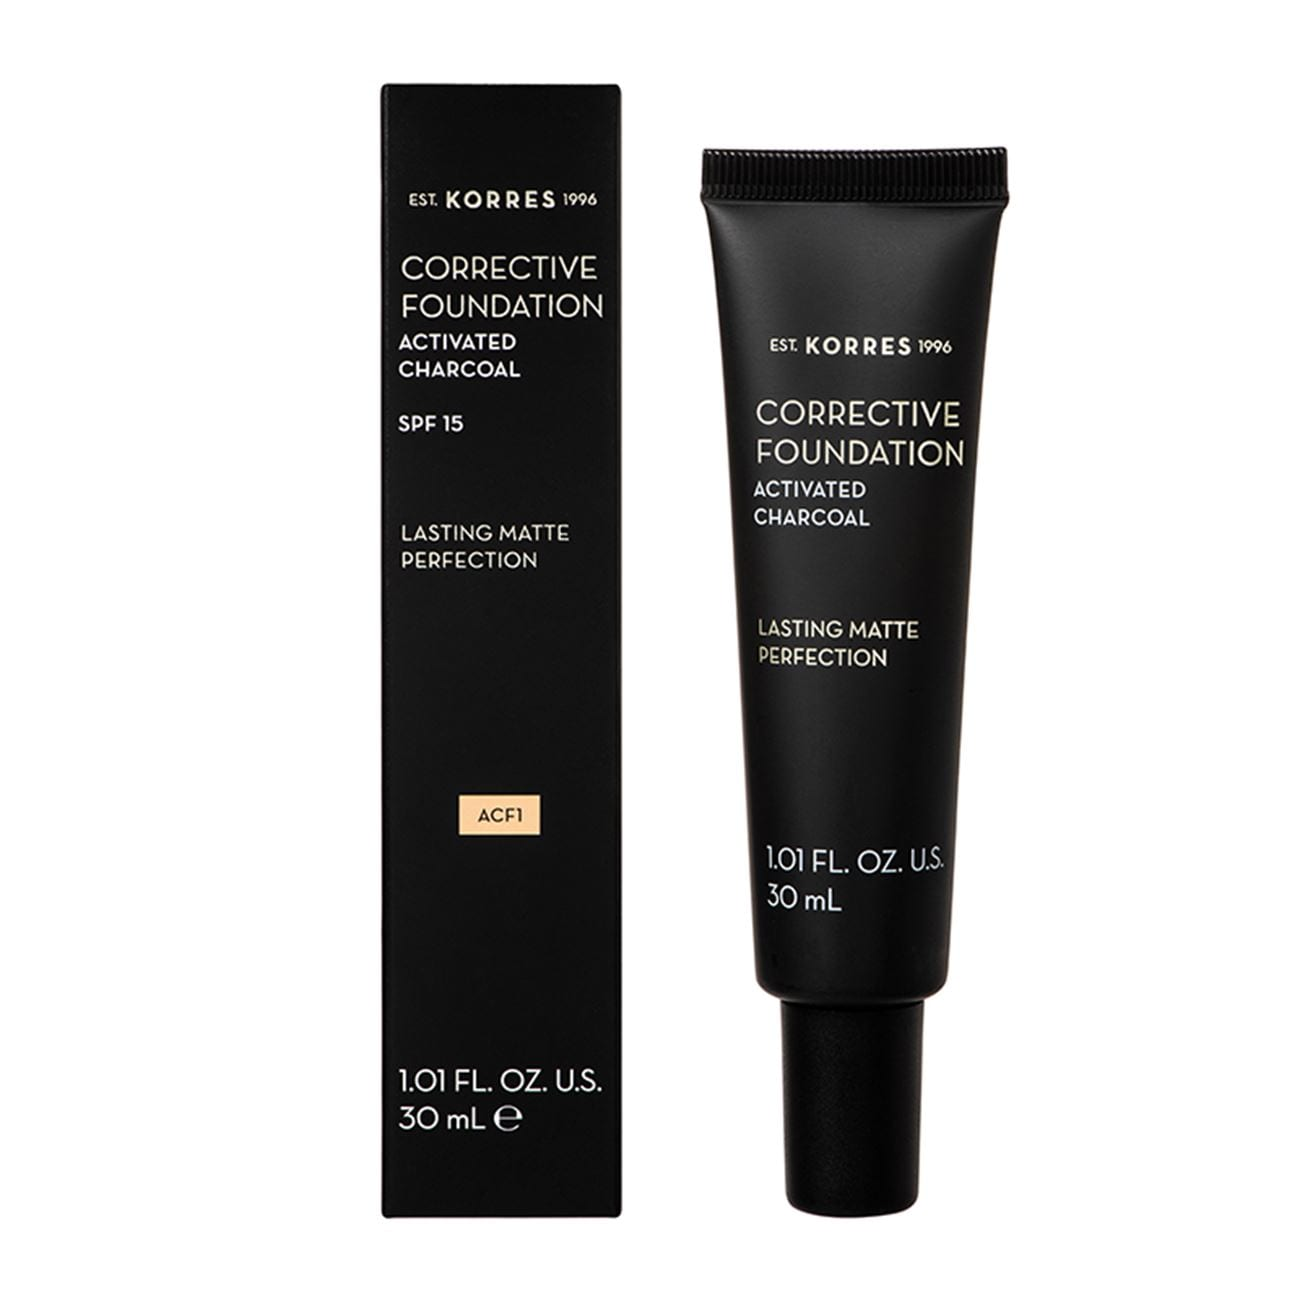 Corrective Foundation Activated Charcoal SPF15